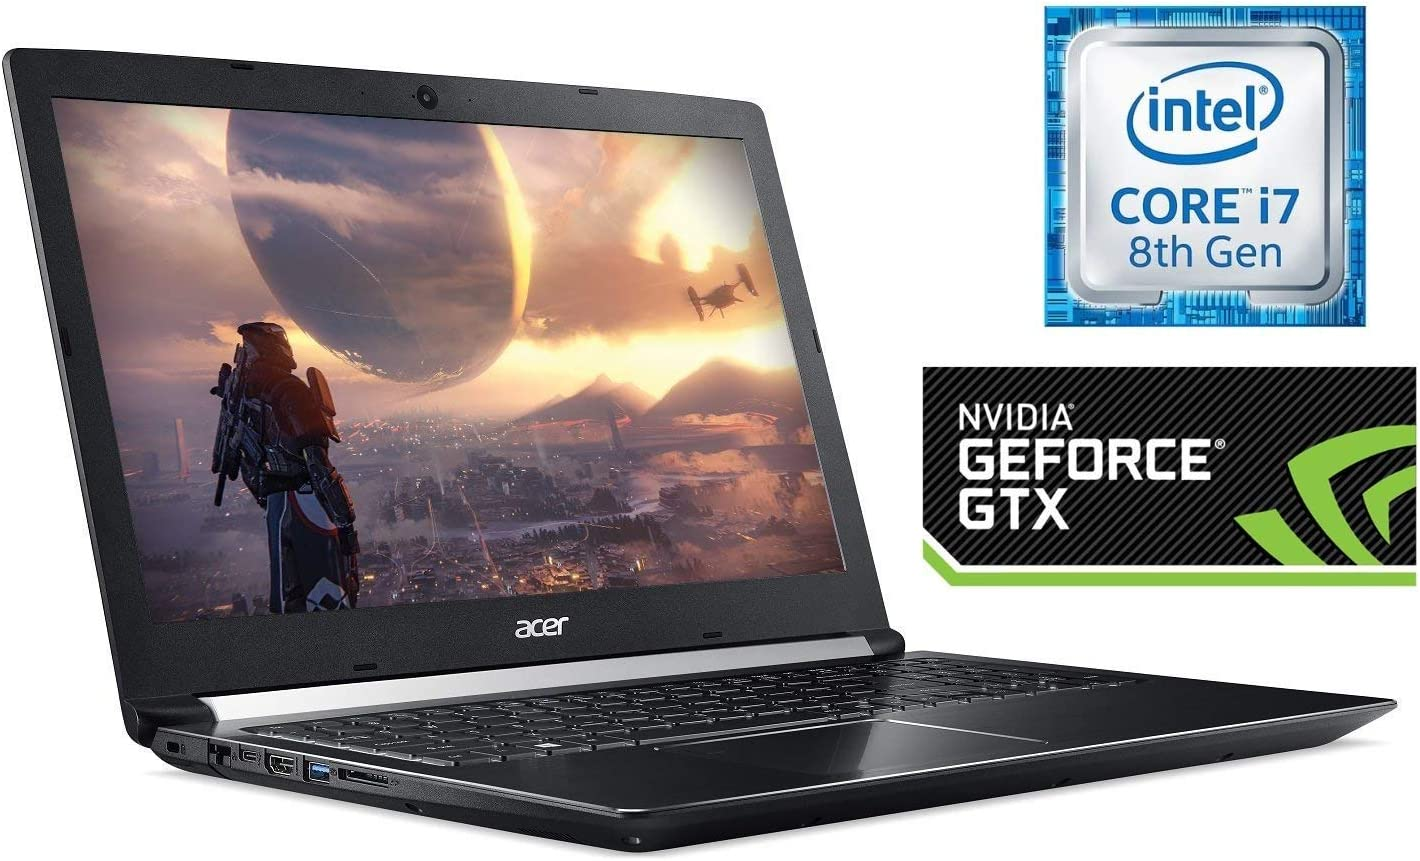 "Acer Aspire 7 Gaming Laptop, 15.6"" Full HD IPS Display, Intel 6-Core i7-8750H, 256GB SSD + 1TB Firecuda Gaming SSHD, 16GB DDR4, NVIDIA GeForce GTX 1050Ti 4GB, Backlit Keyboard, HDMI, USB C, Win 10"